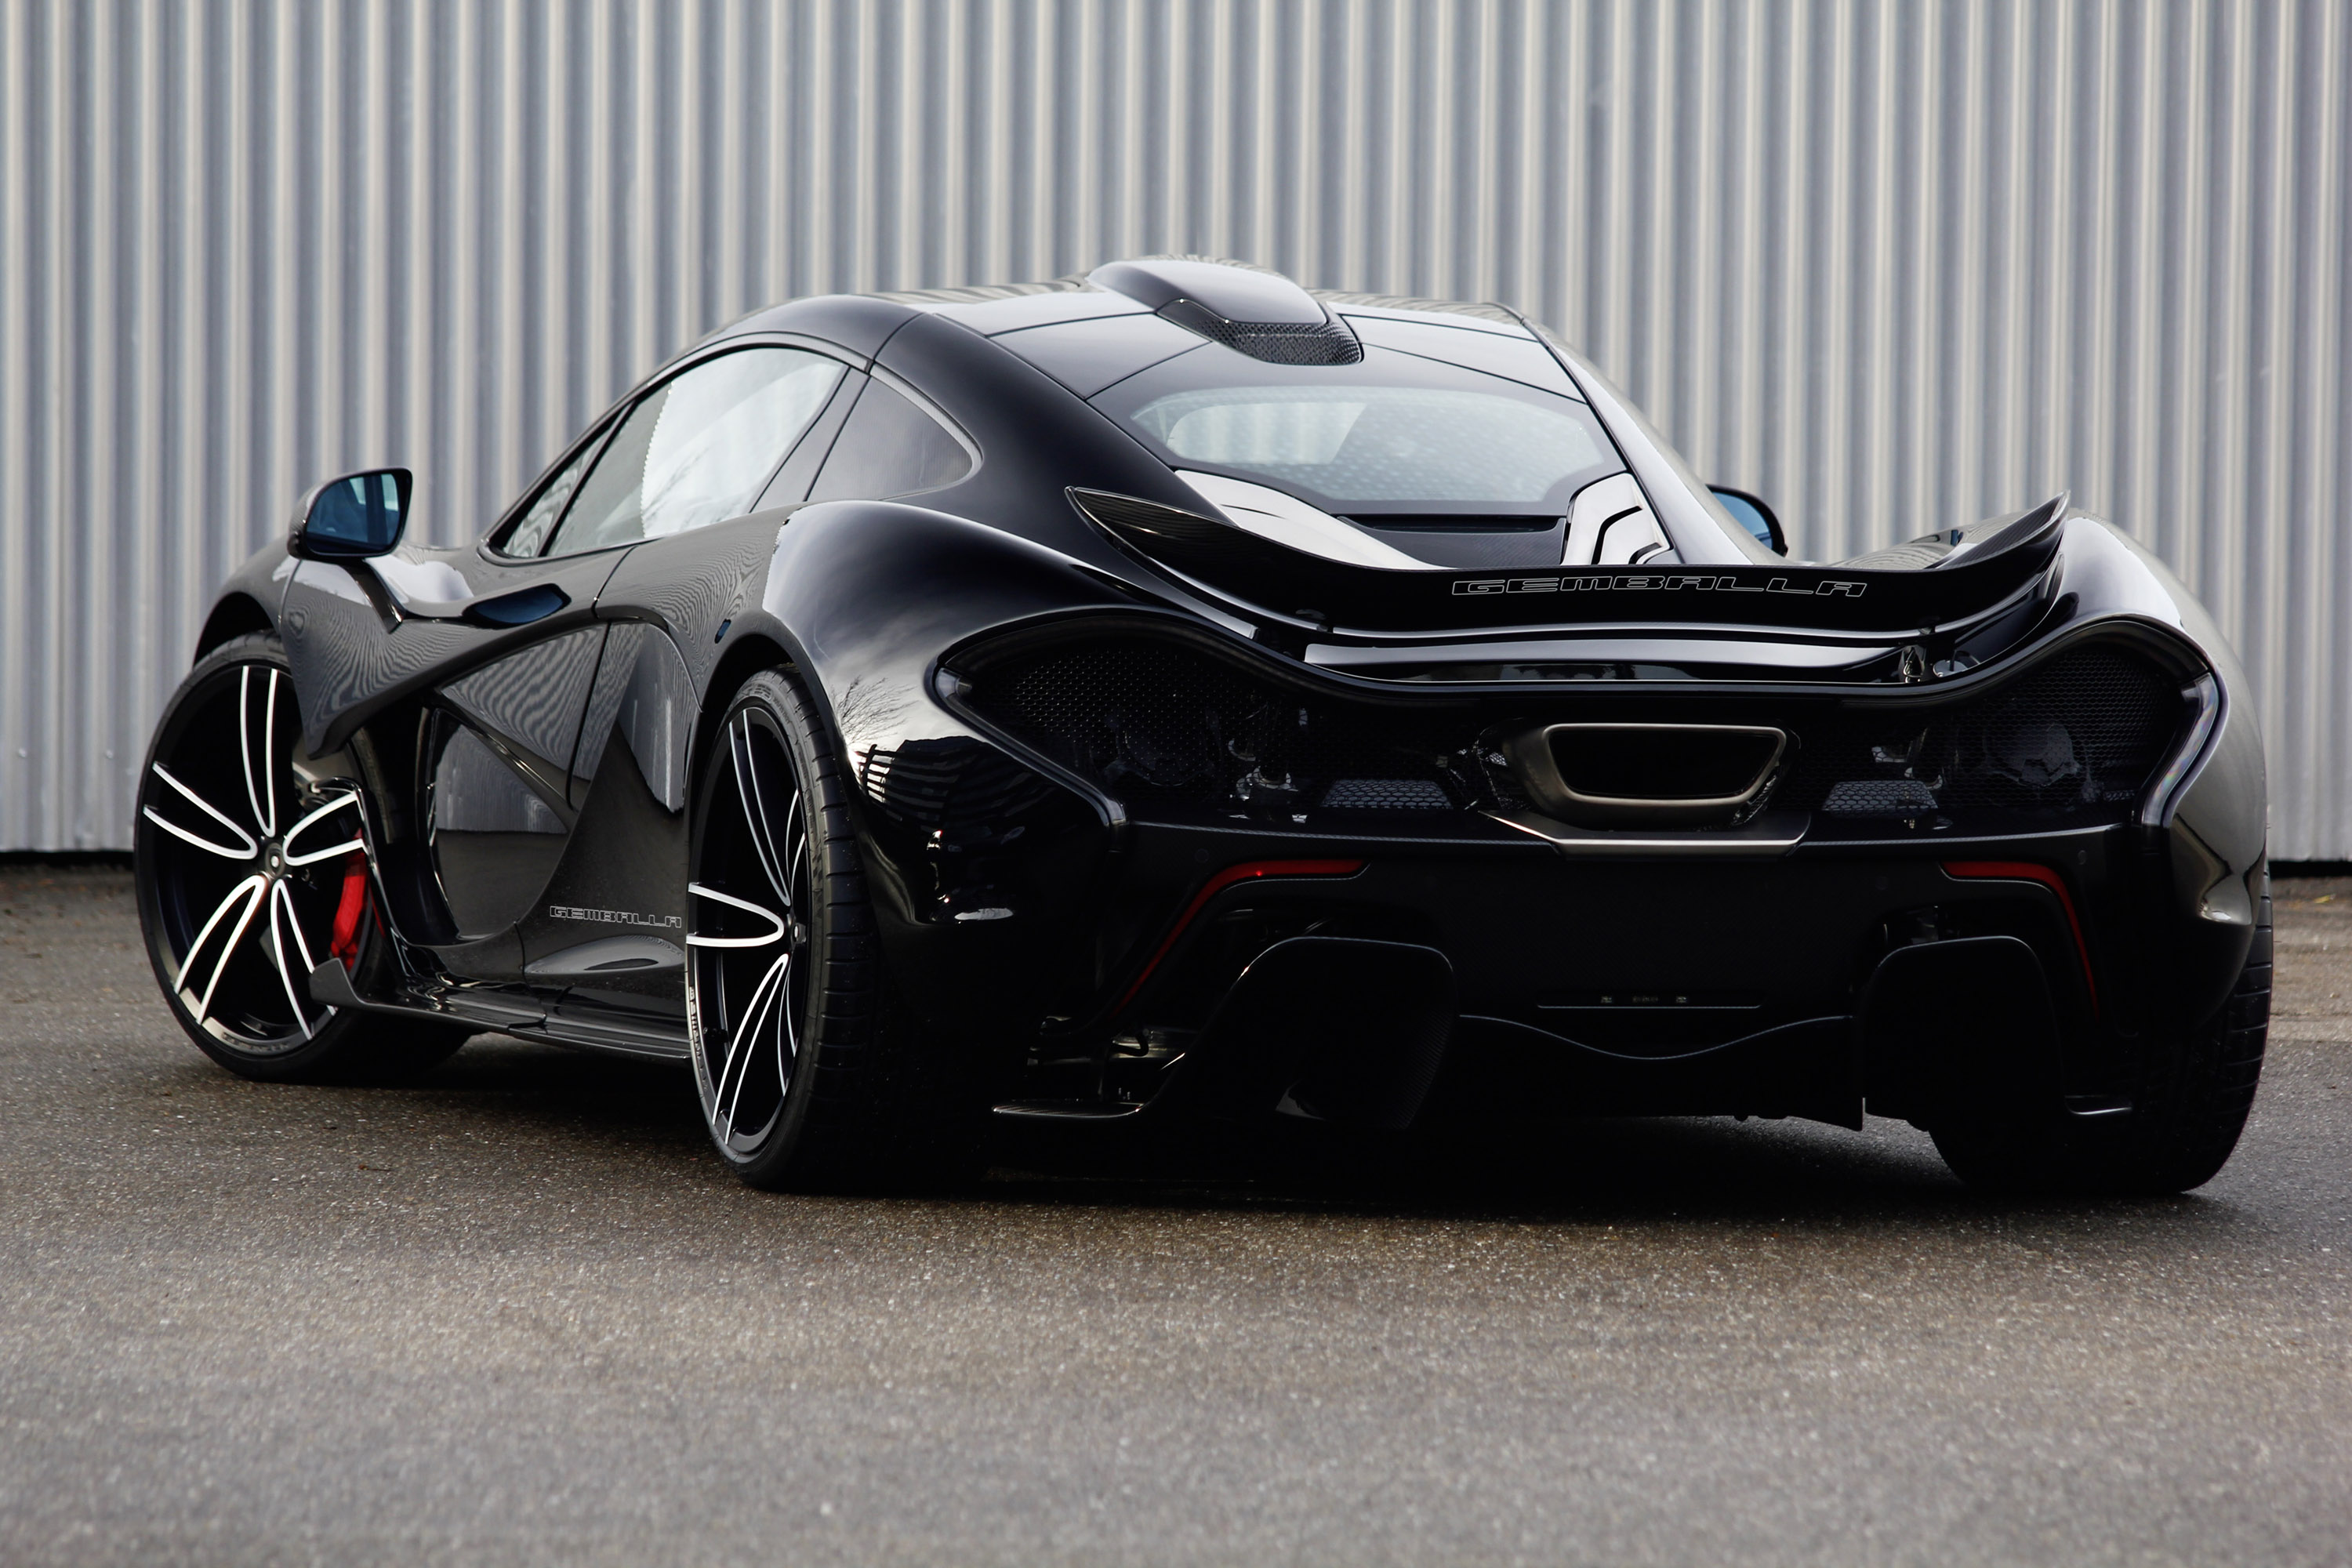 Gemballa With The First Ever Wheels For The Mclaren P1